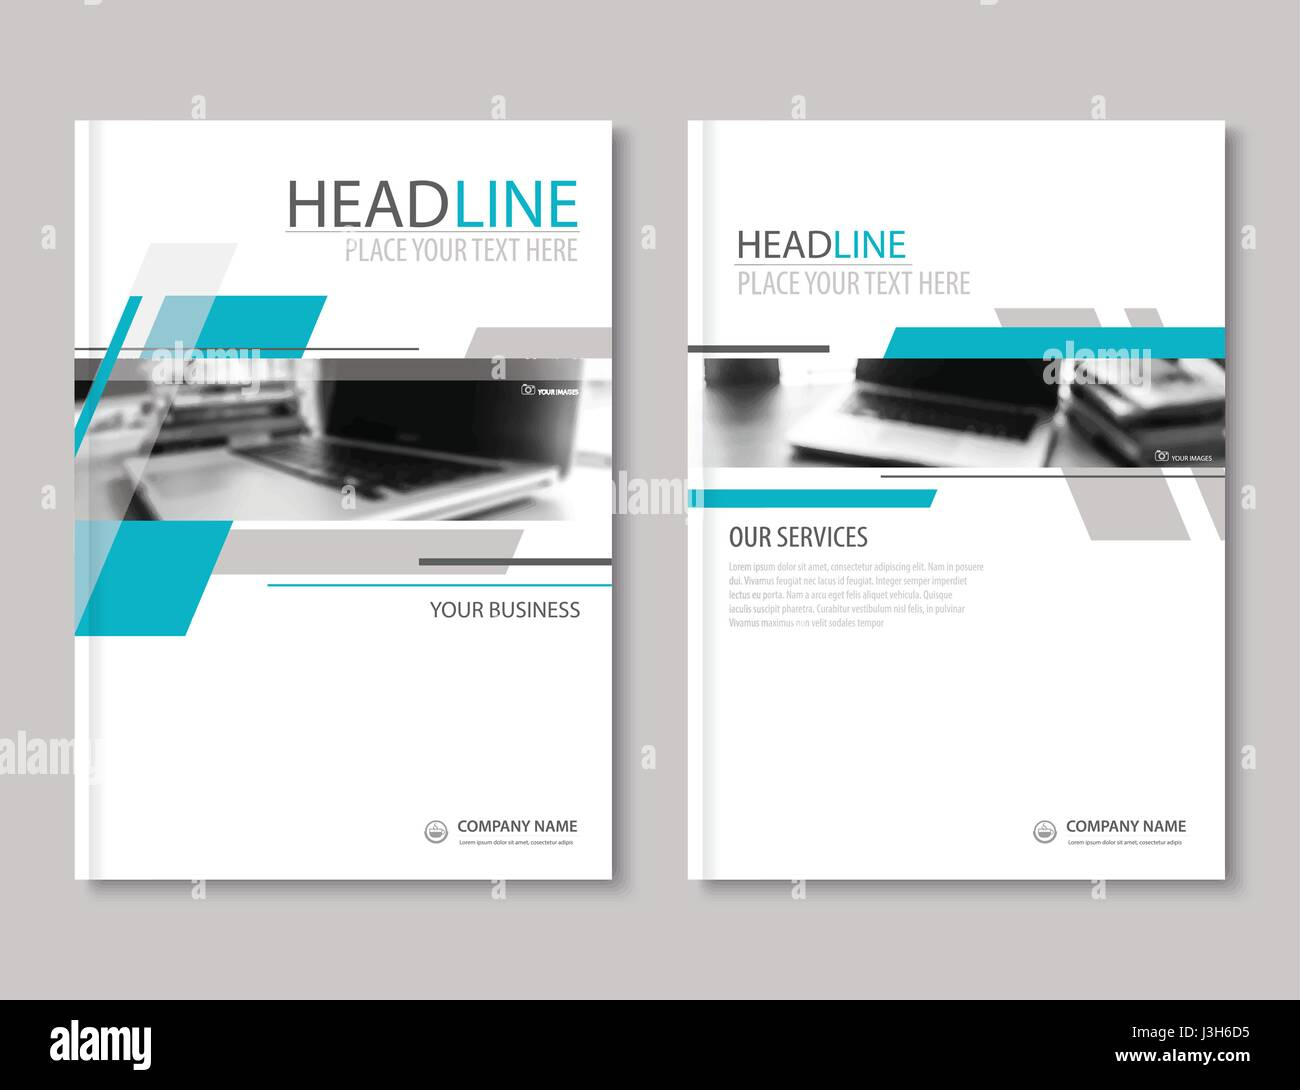 annual report brochure flyer design template company profile business headlineleaflet cover presentation flat background